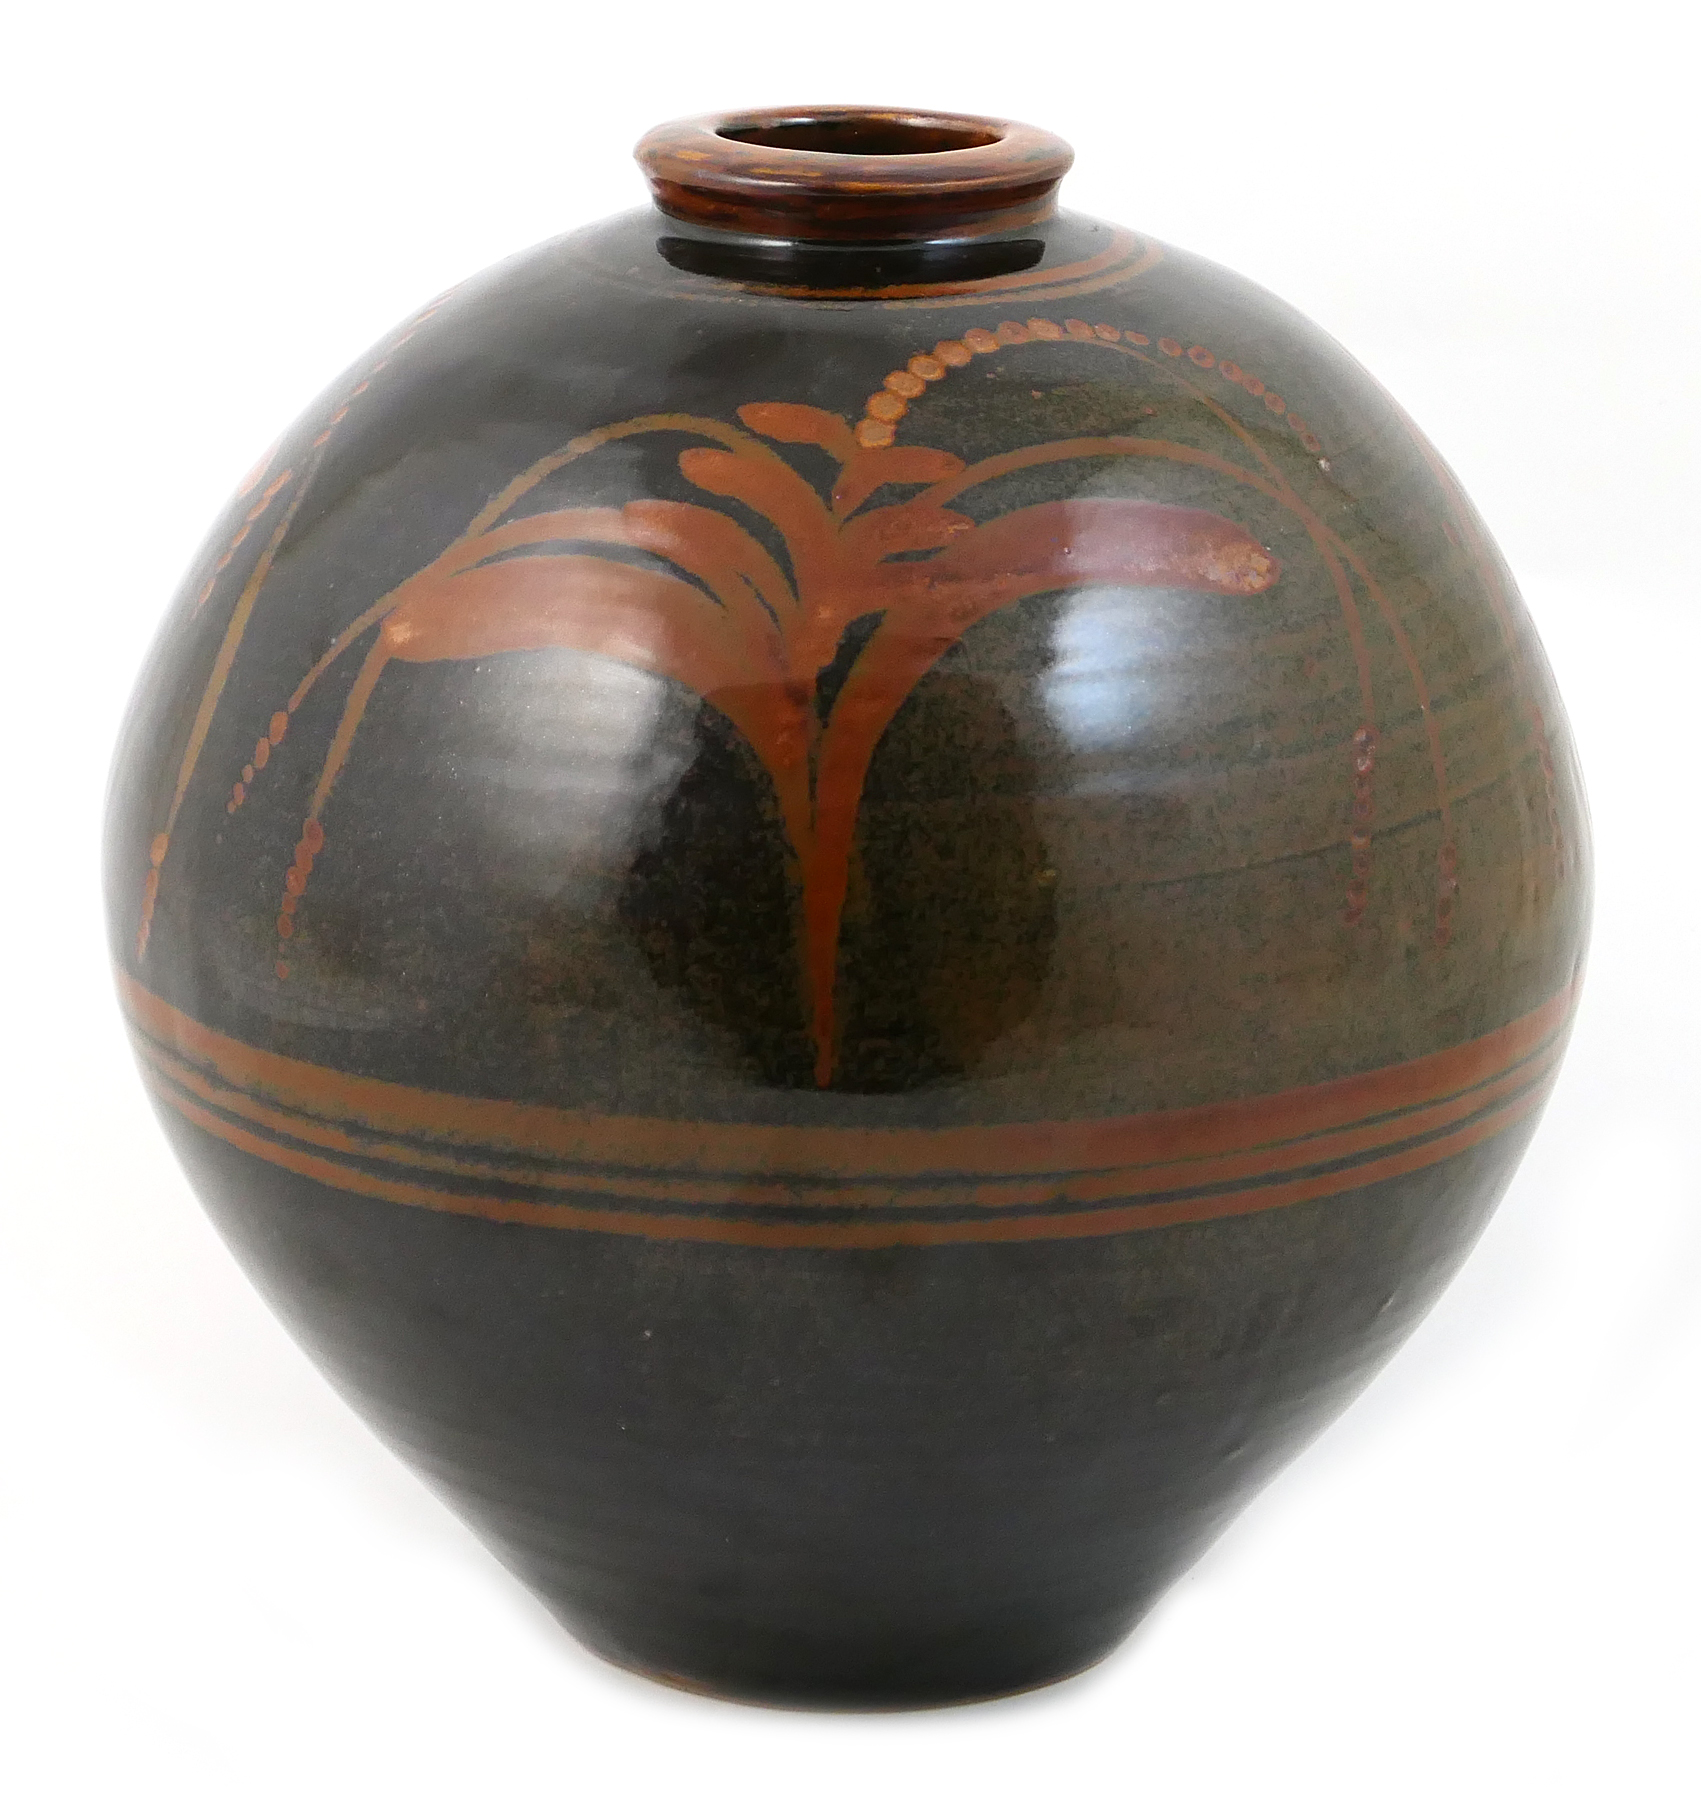 Lot 44 - David Leach (1911-2005), large stoneware globular jar, decorated throughout in a tamaku glaze